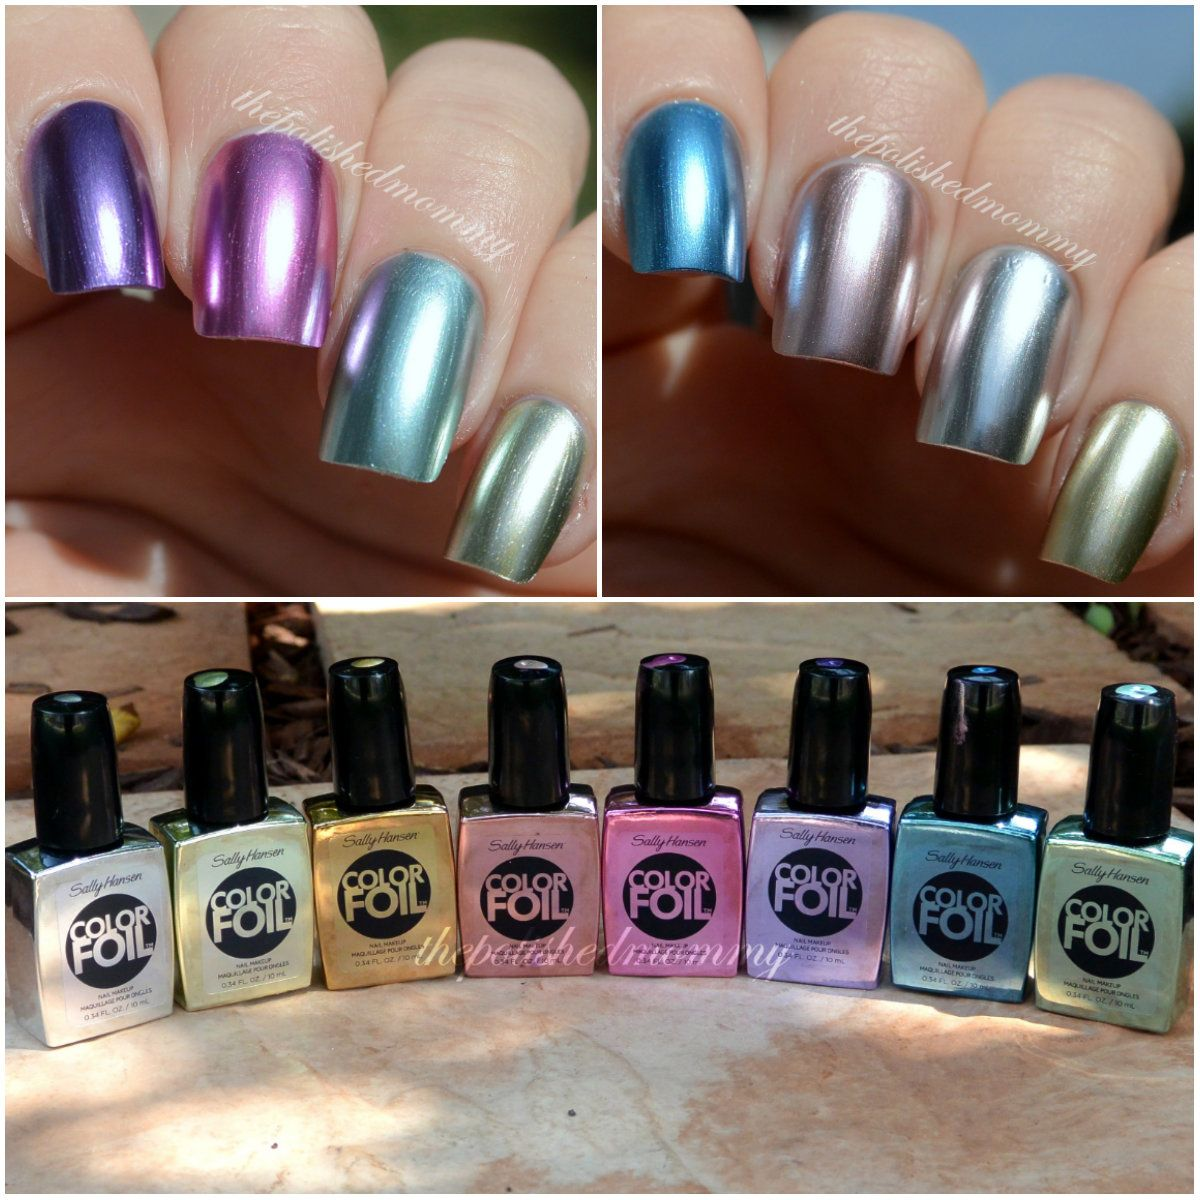 Sally Hansen Colorfoils - good post with lots of helpful tips. These ...